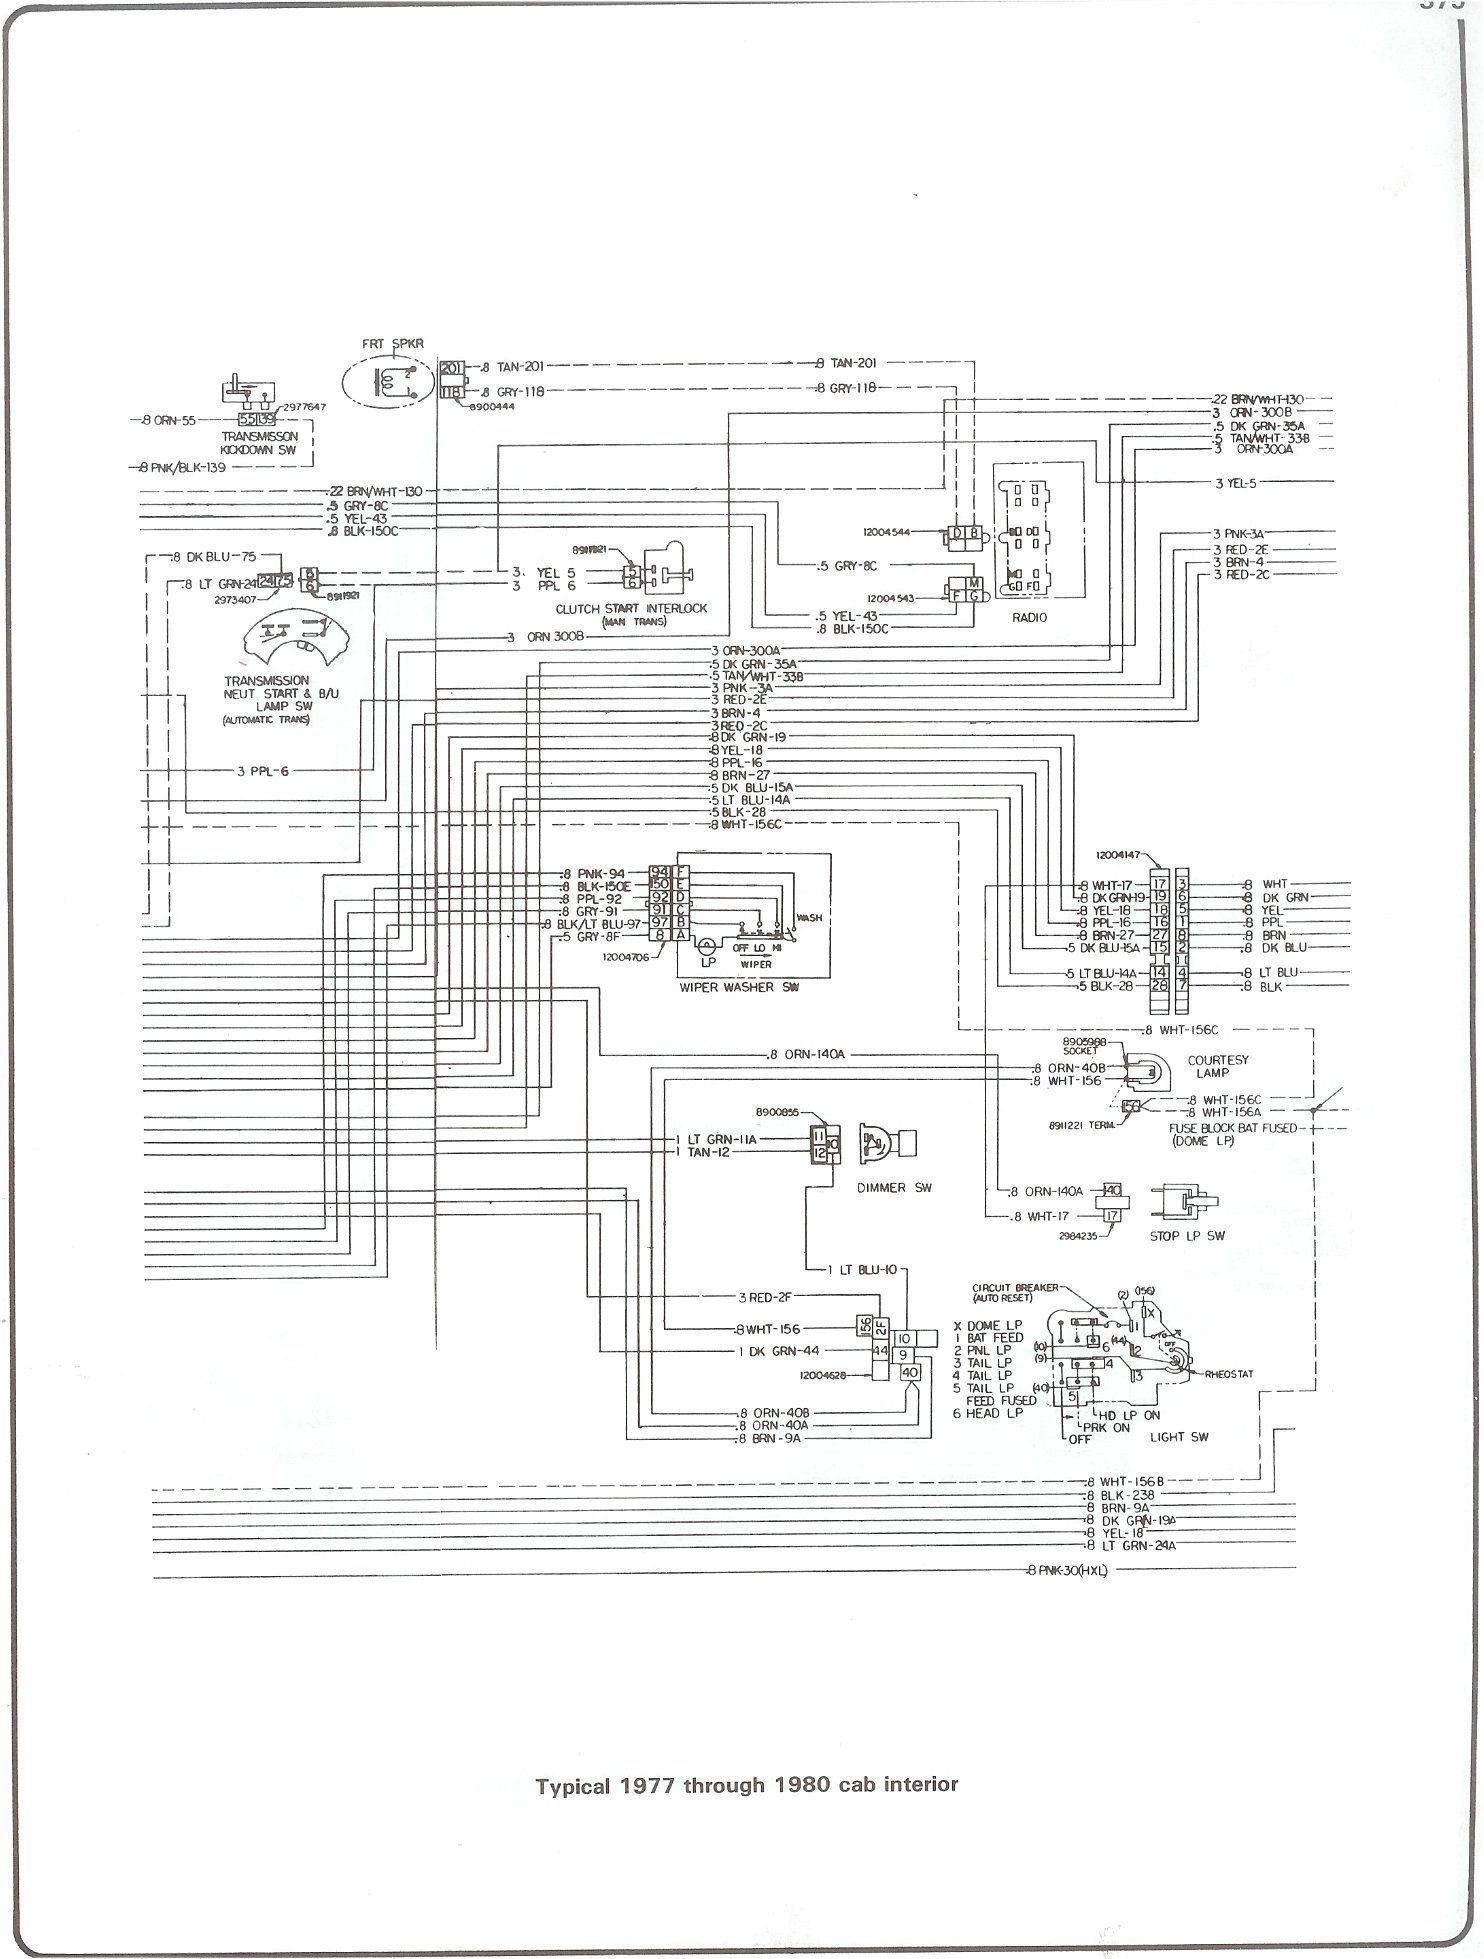 1987 Gmc Wiring Diagram For Wipers - Basic Guide Wiring Diagram •